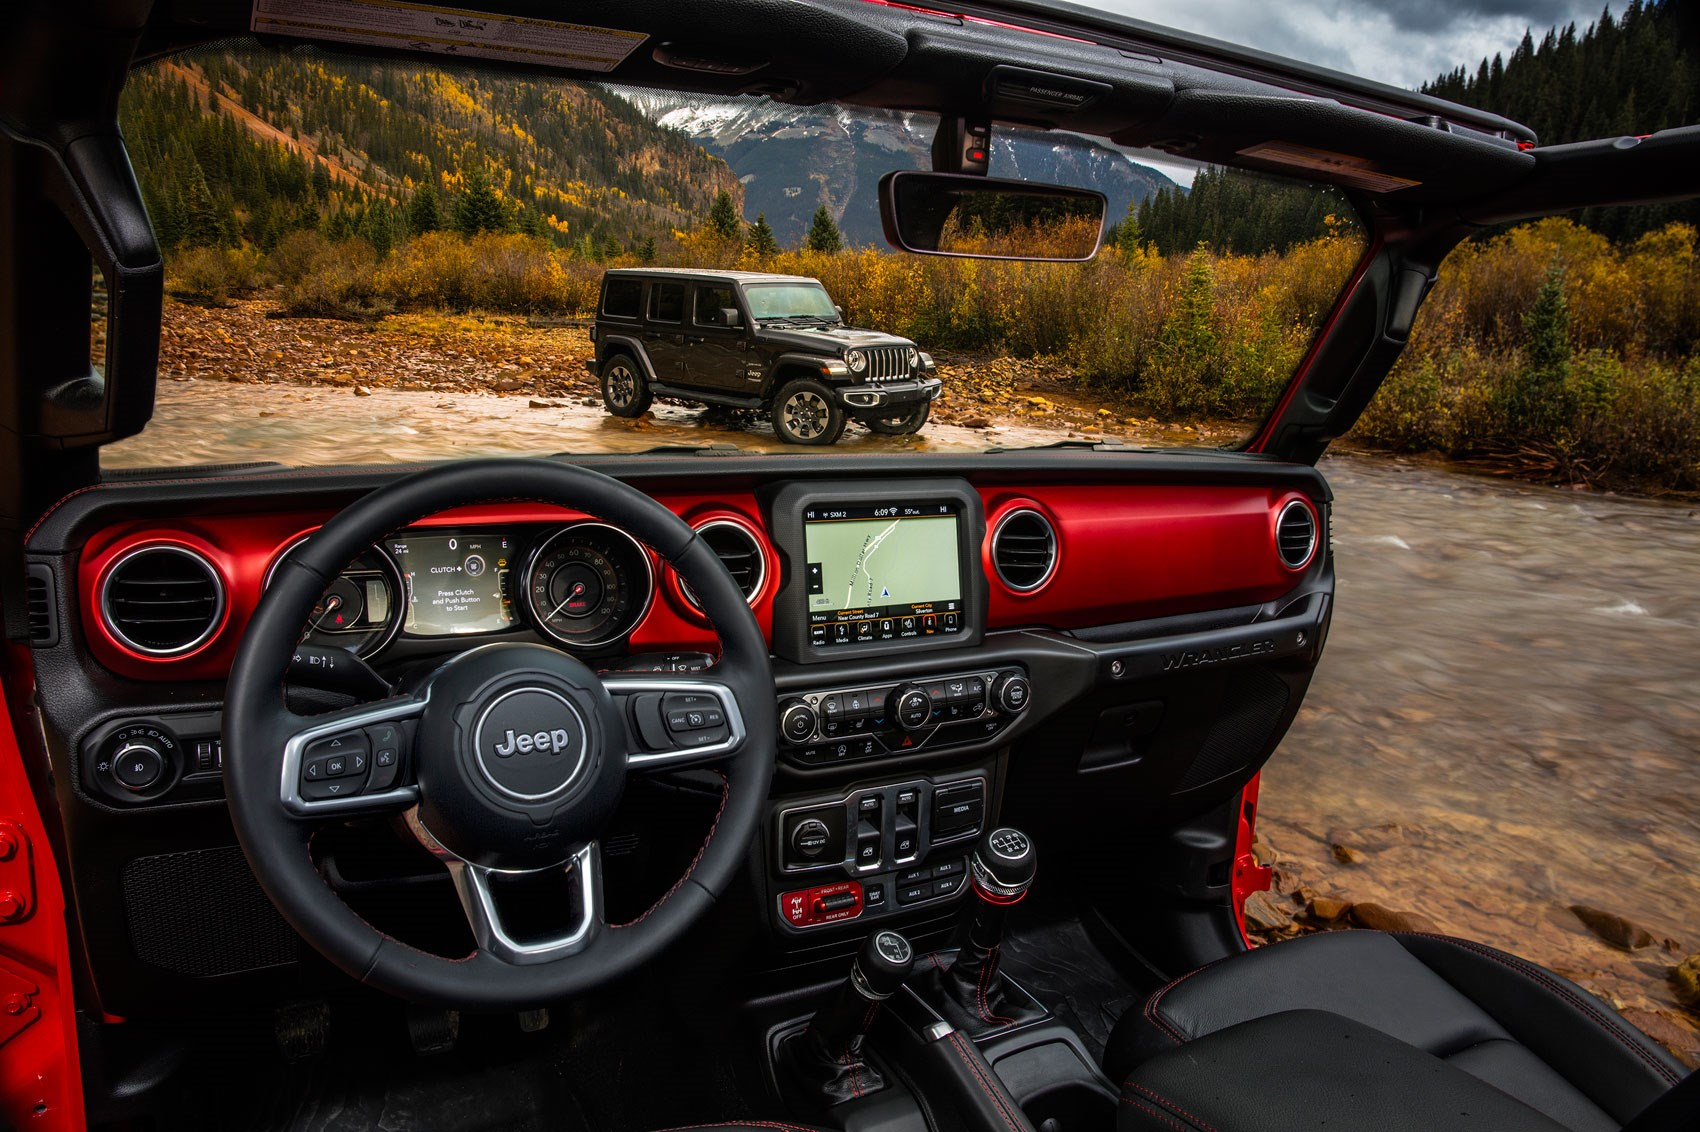 New Jeep Wrangler: the go-anywhere SUV reborn for 2018 arrives in Europe ...